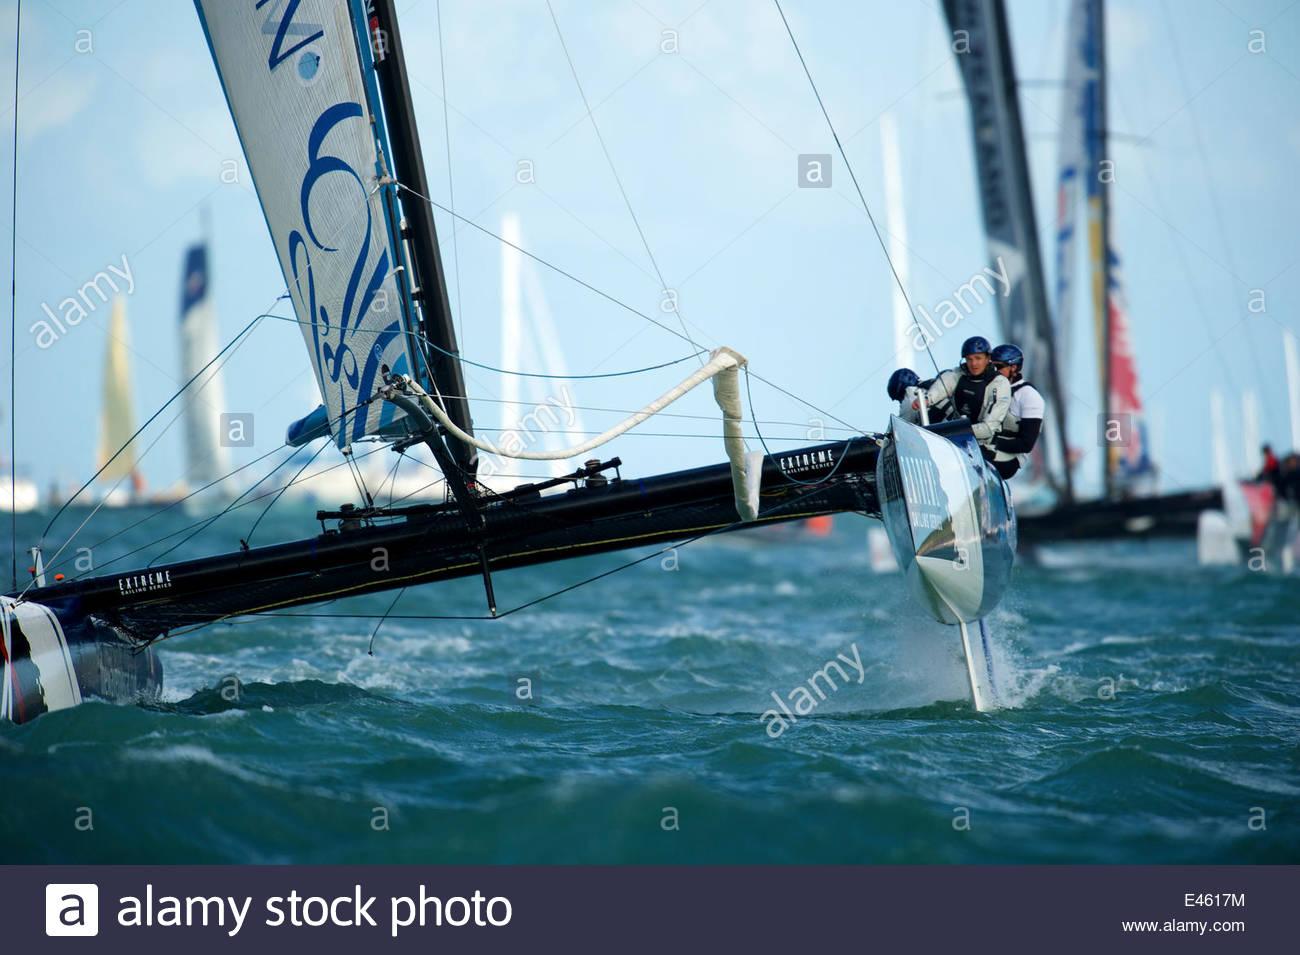 """""""The Wave Muscat"""" leading the fleet on day two of the Extreme 40 Sailing Series in Cowes. Isle of Wight, England, Stock Photo"""